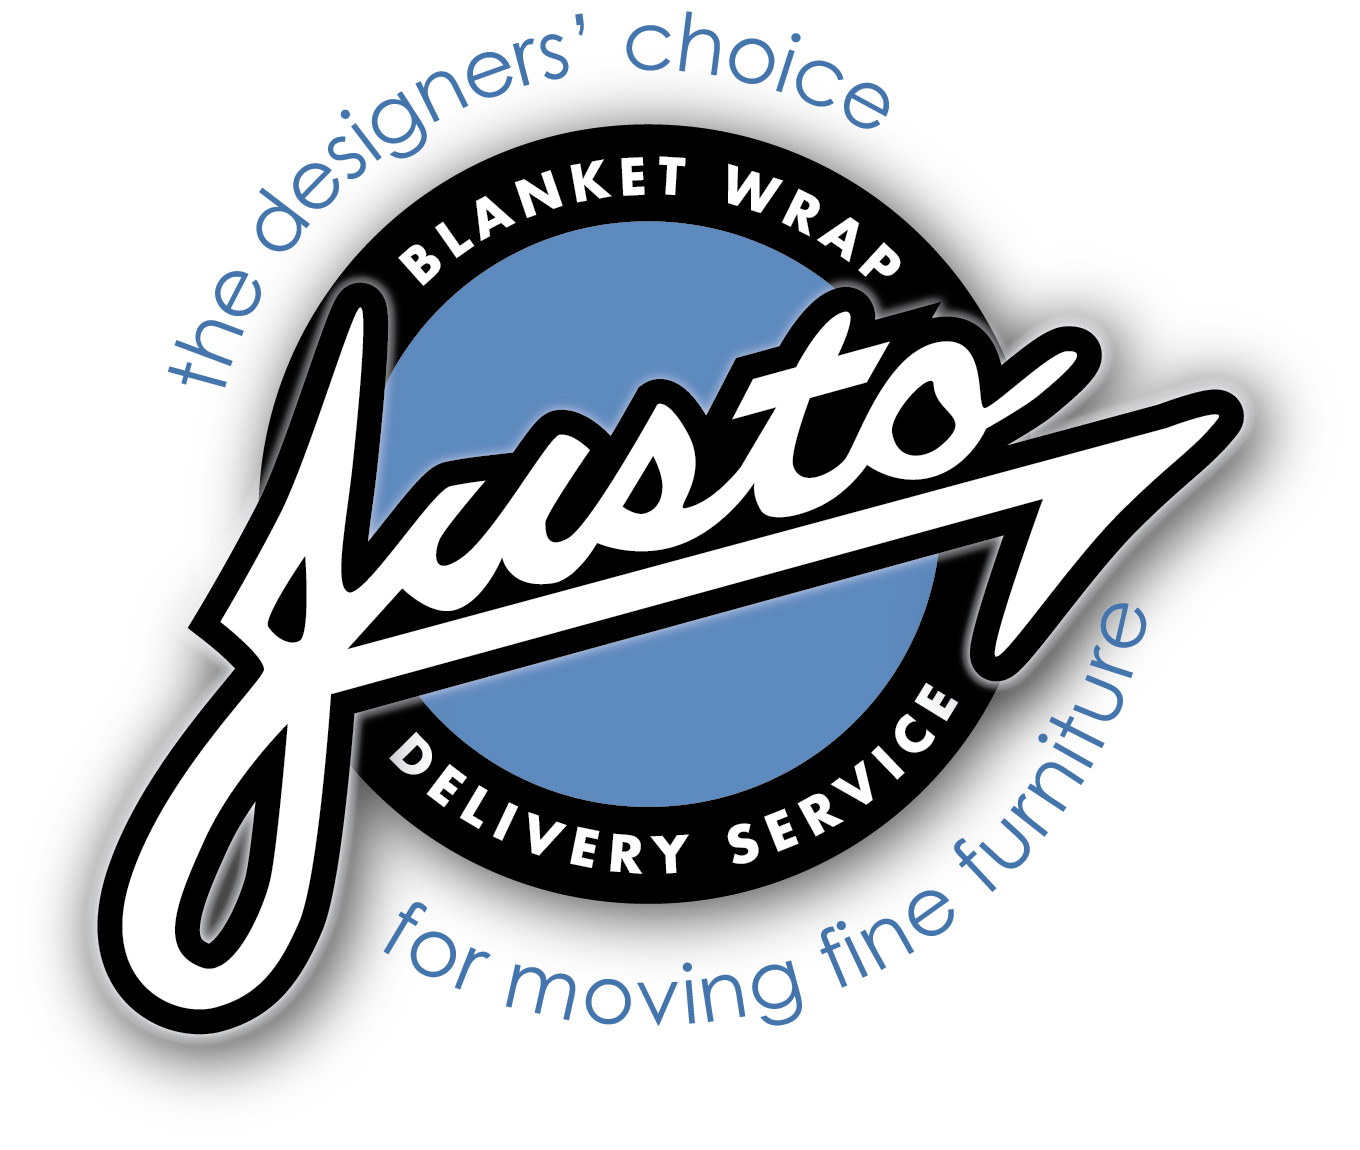 logo of Justo Delivery